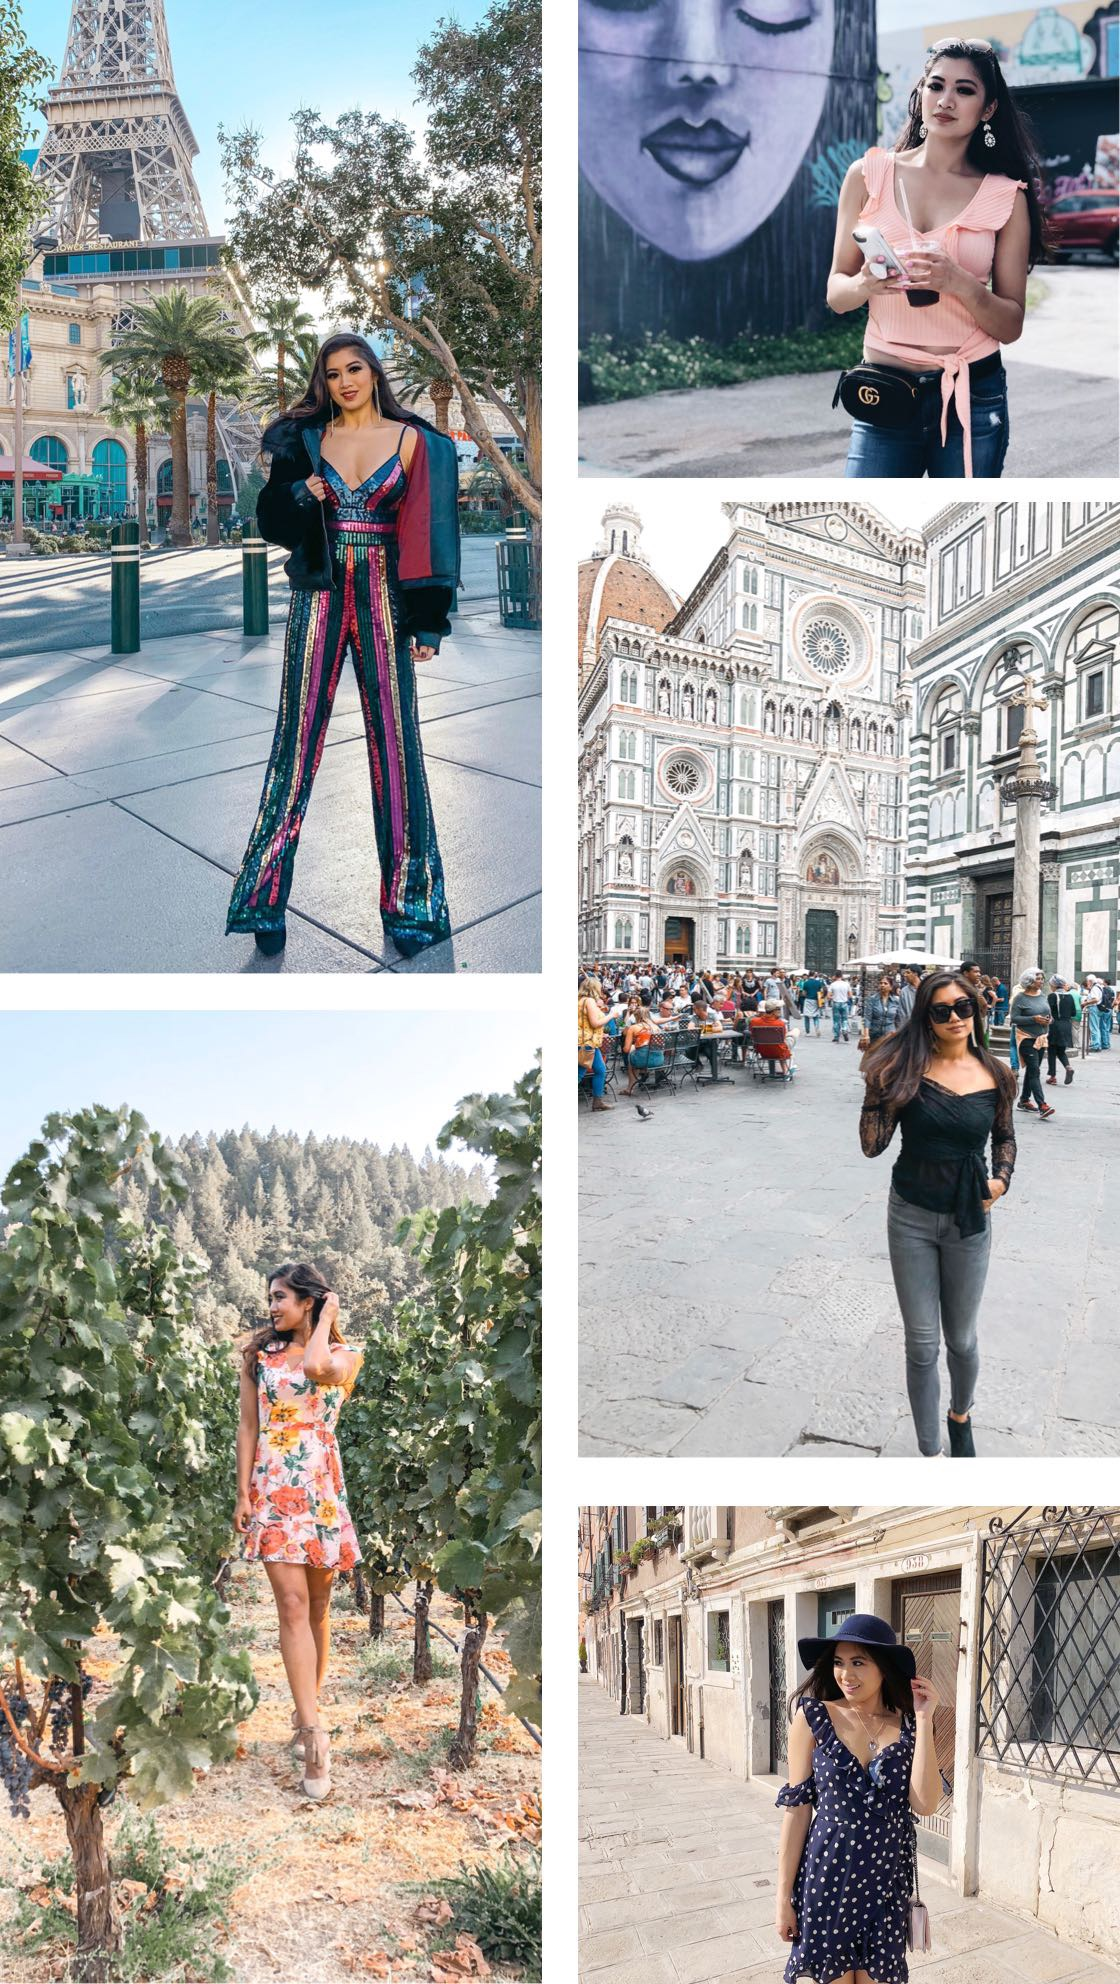 Rounded up some of my favorite photos of 2018 from the different cities I visited this past year!